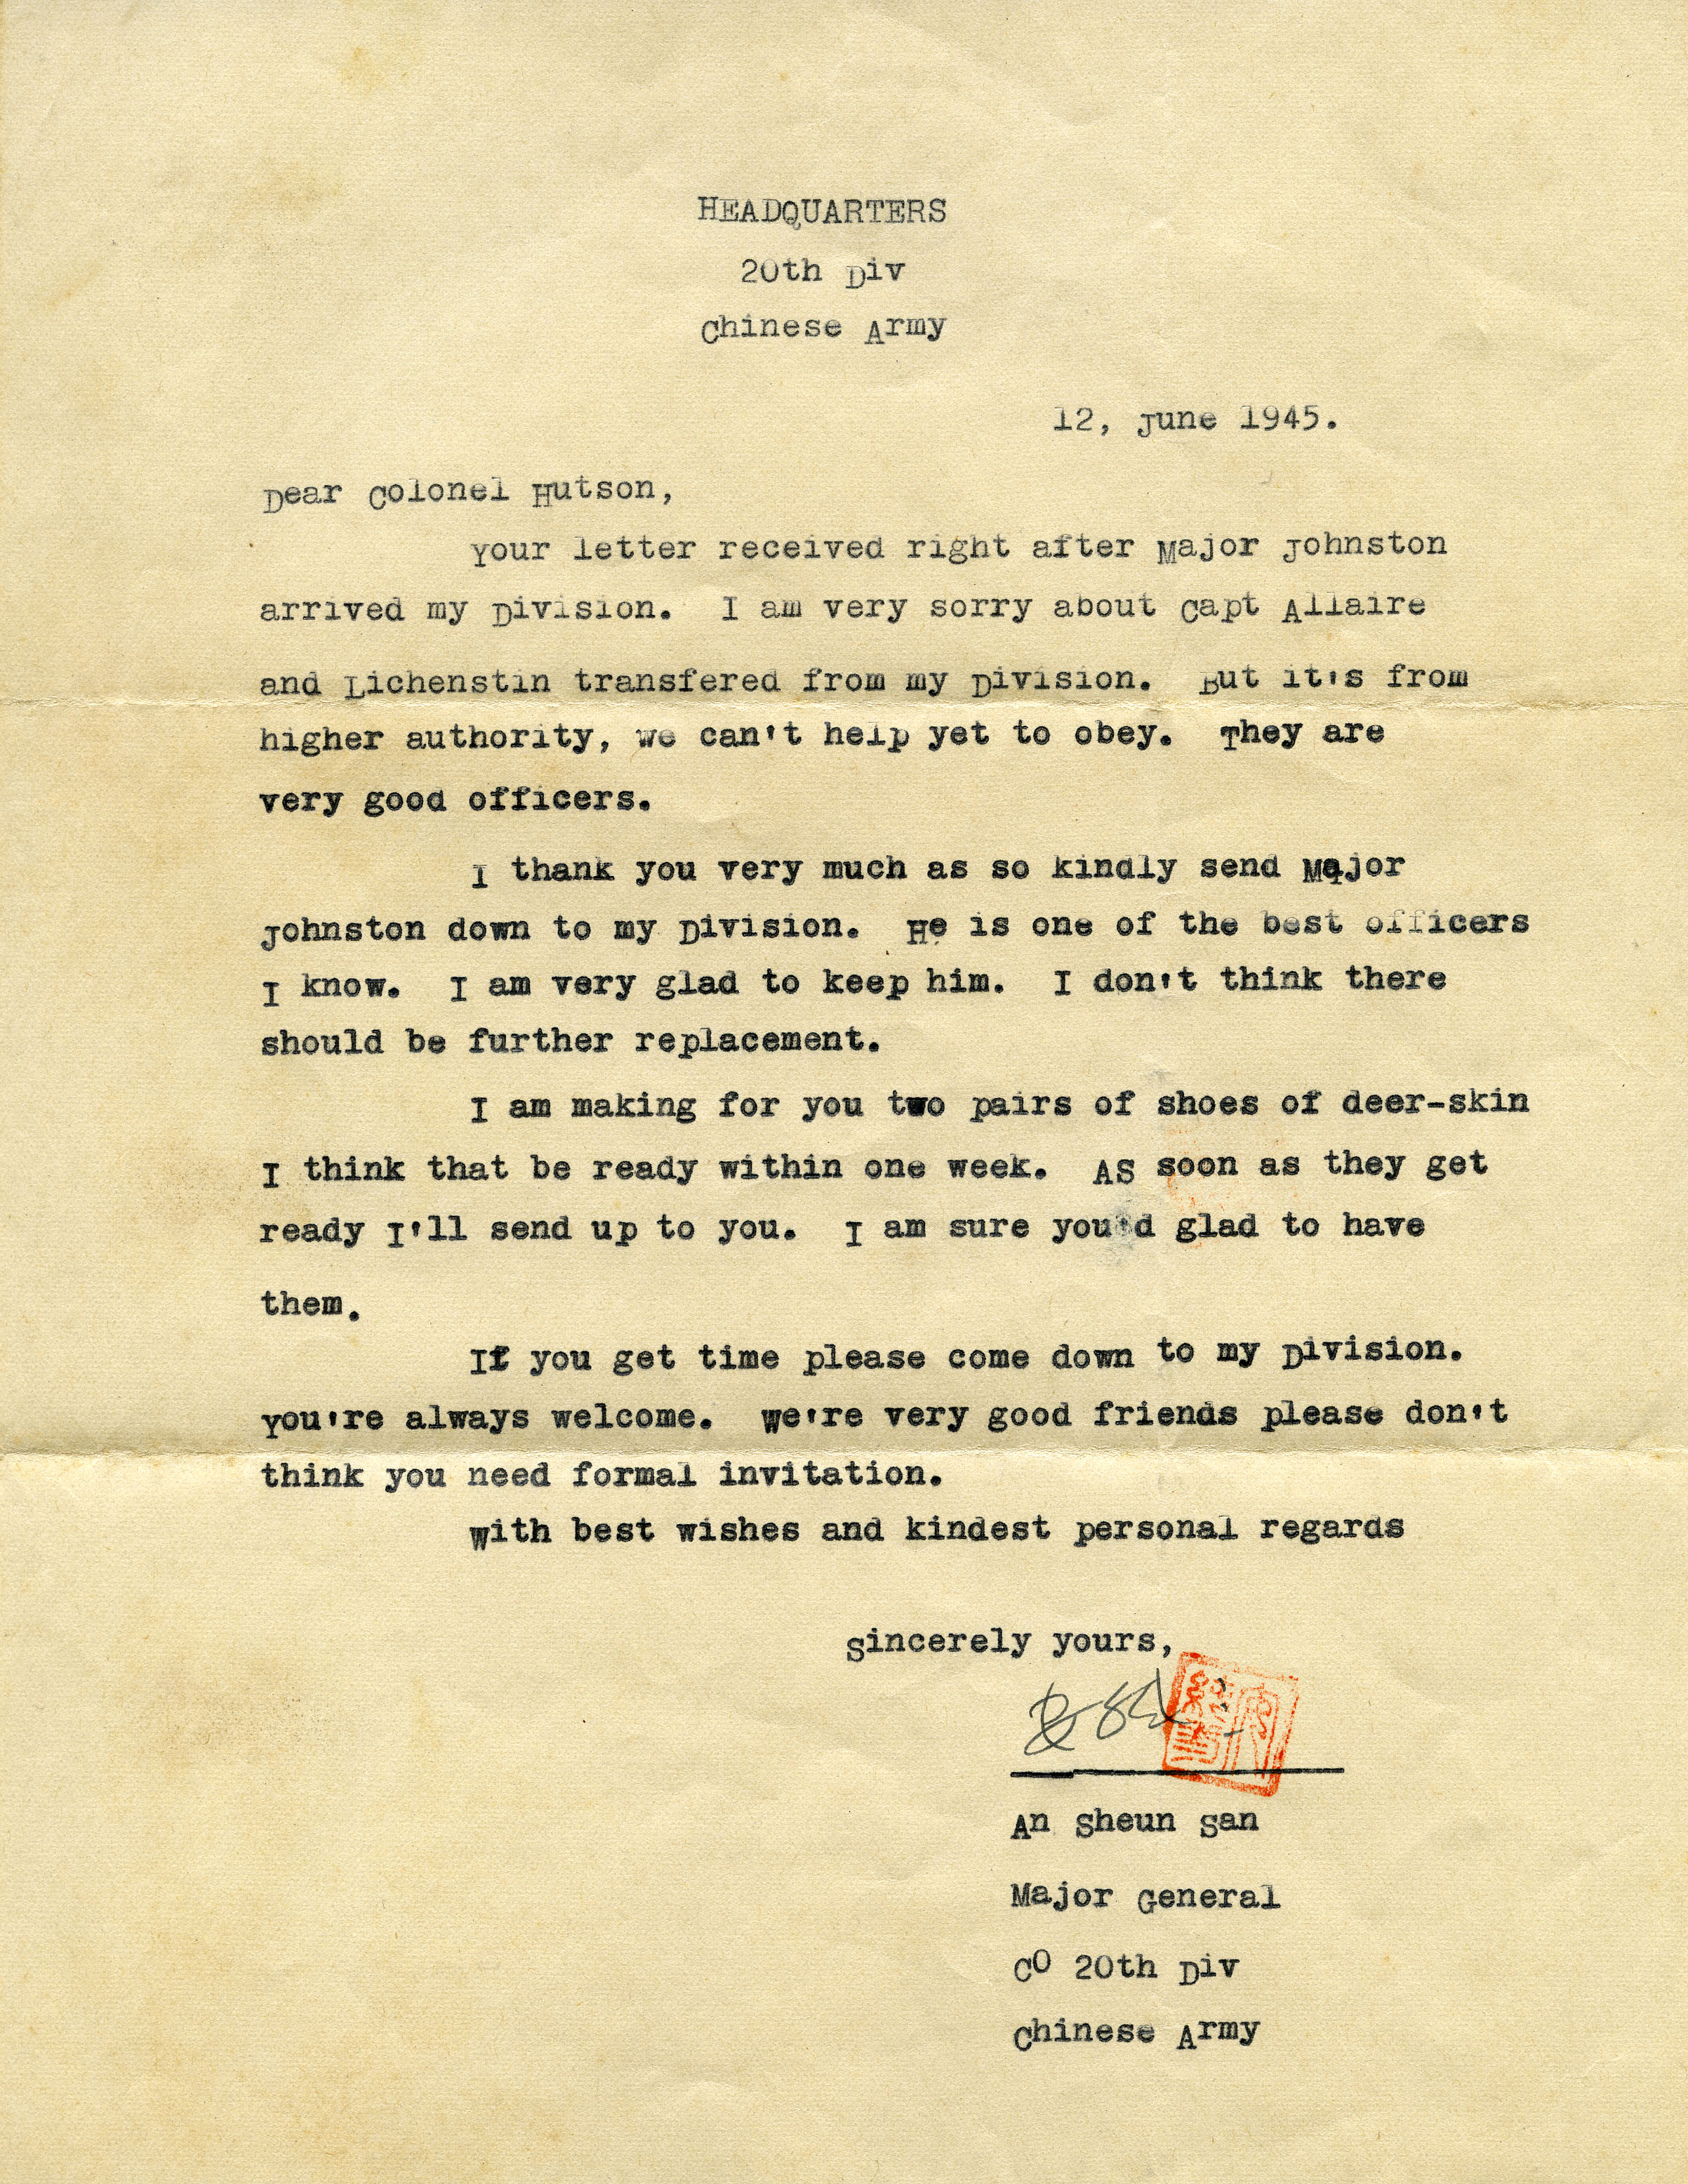 Letter to Hutson from the commander of the Chinese 20th Division